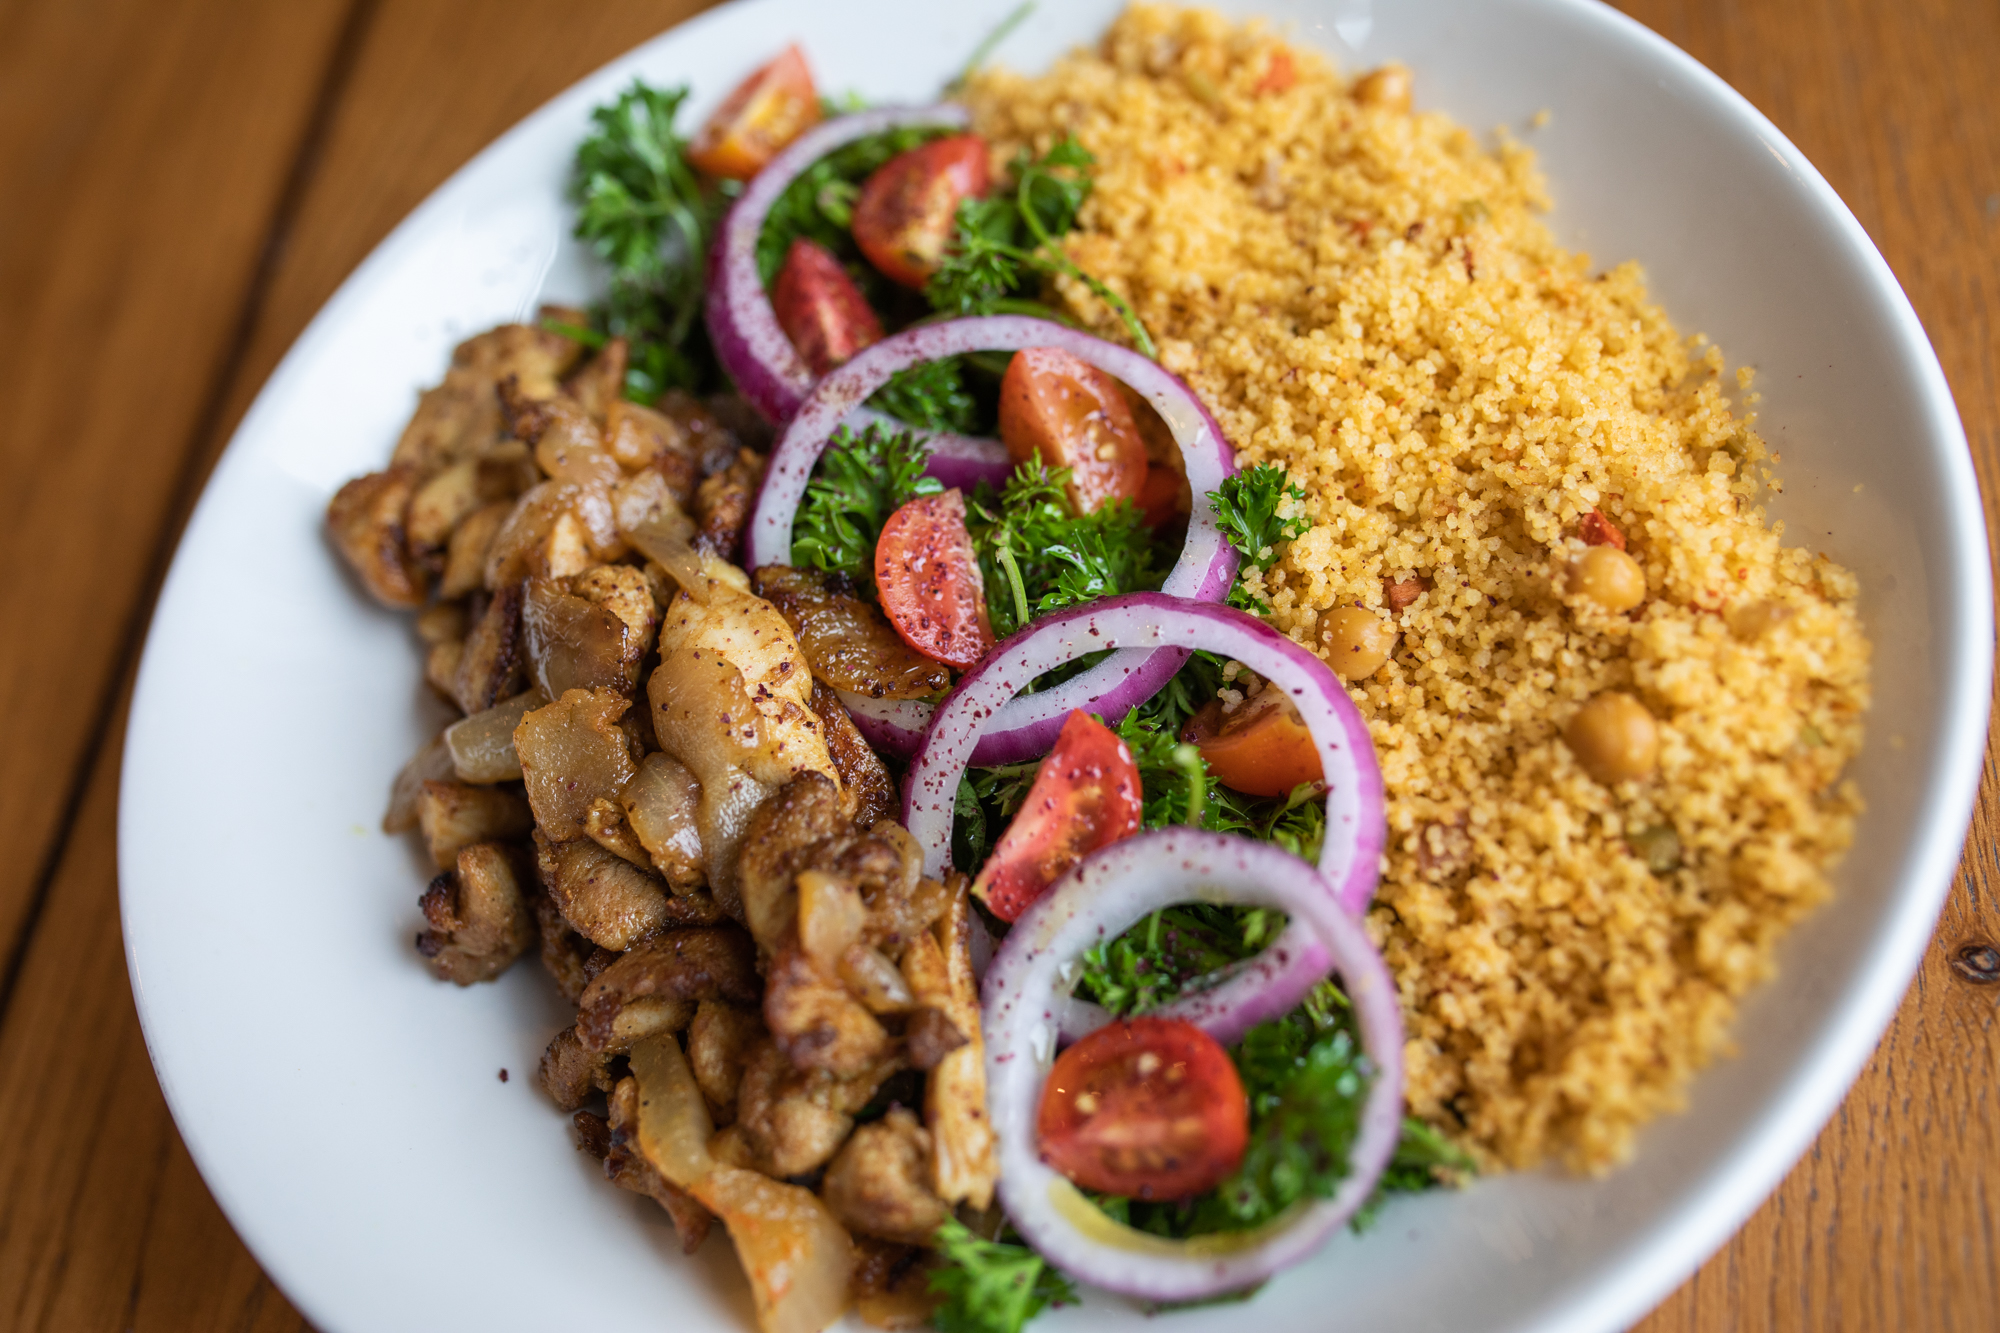 Pieces of cooked chicken with tomato, greens, sliced red onions, and a chickpea and rice blend on a white plate, which is sitting on a wooden table